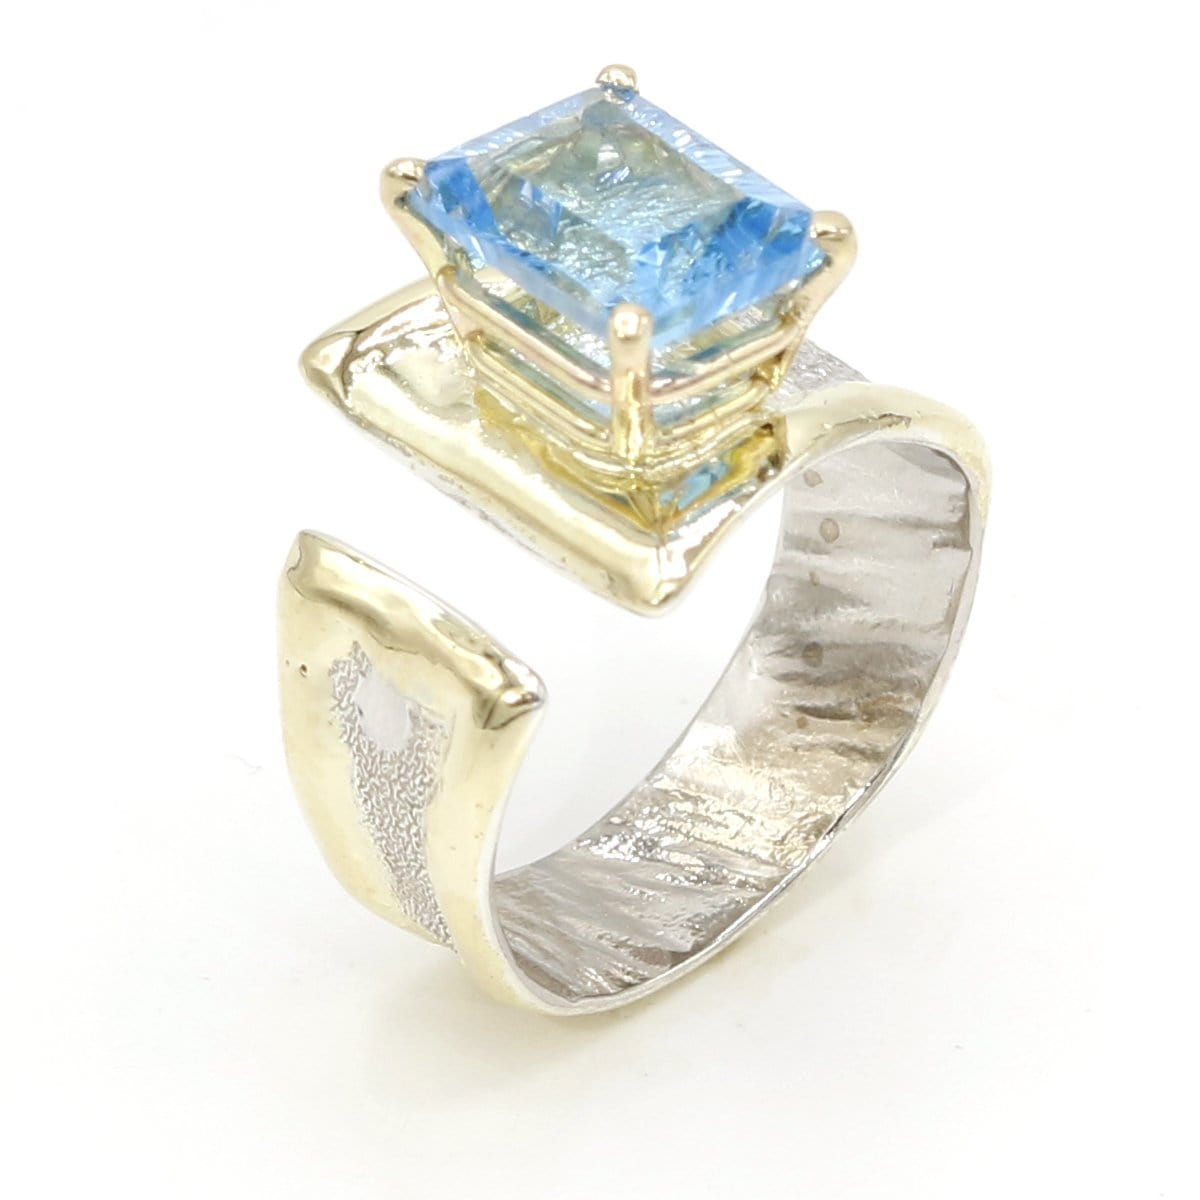 14K Gold & Crystalline Silver Blue Topaz Ring - 37407-Fusion Designs-Renee Taylor Gallery